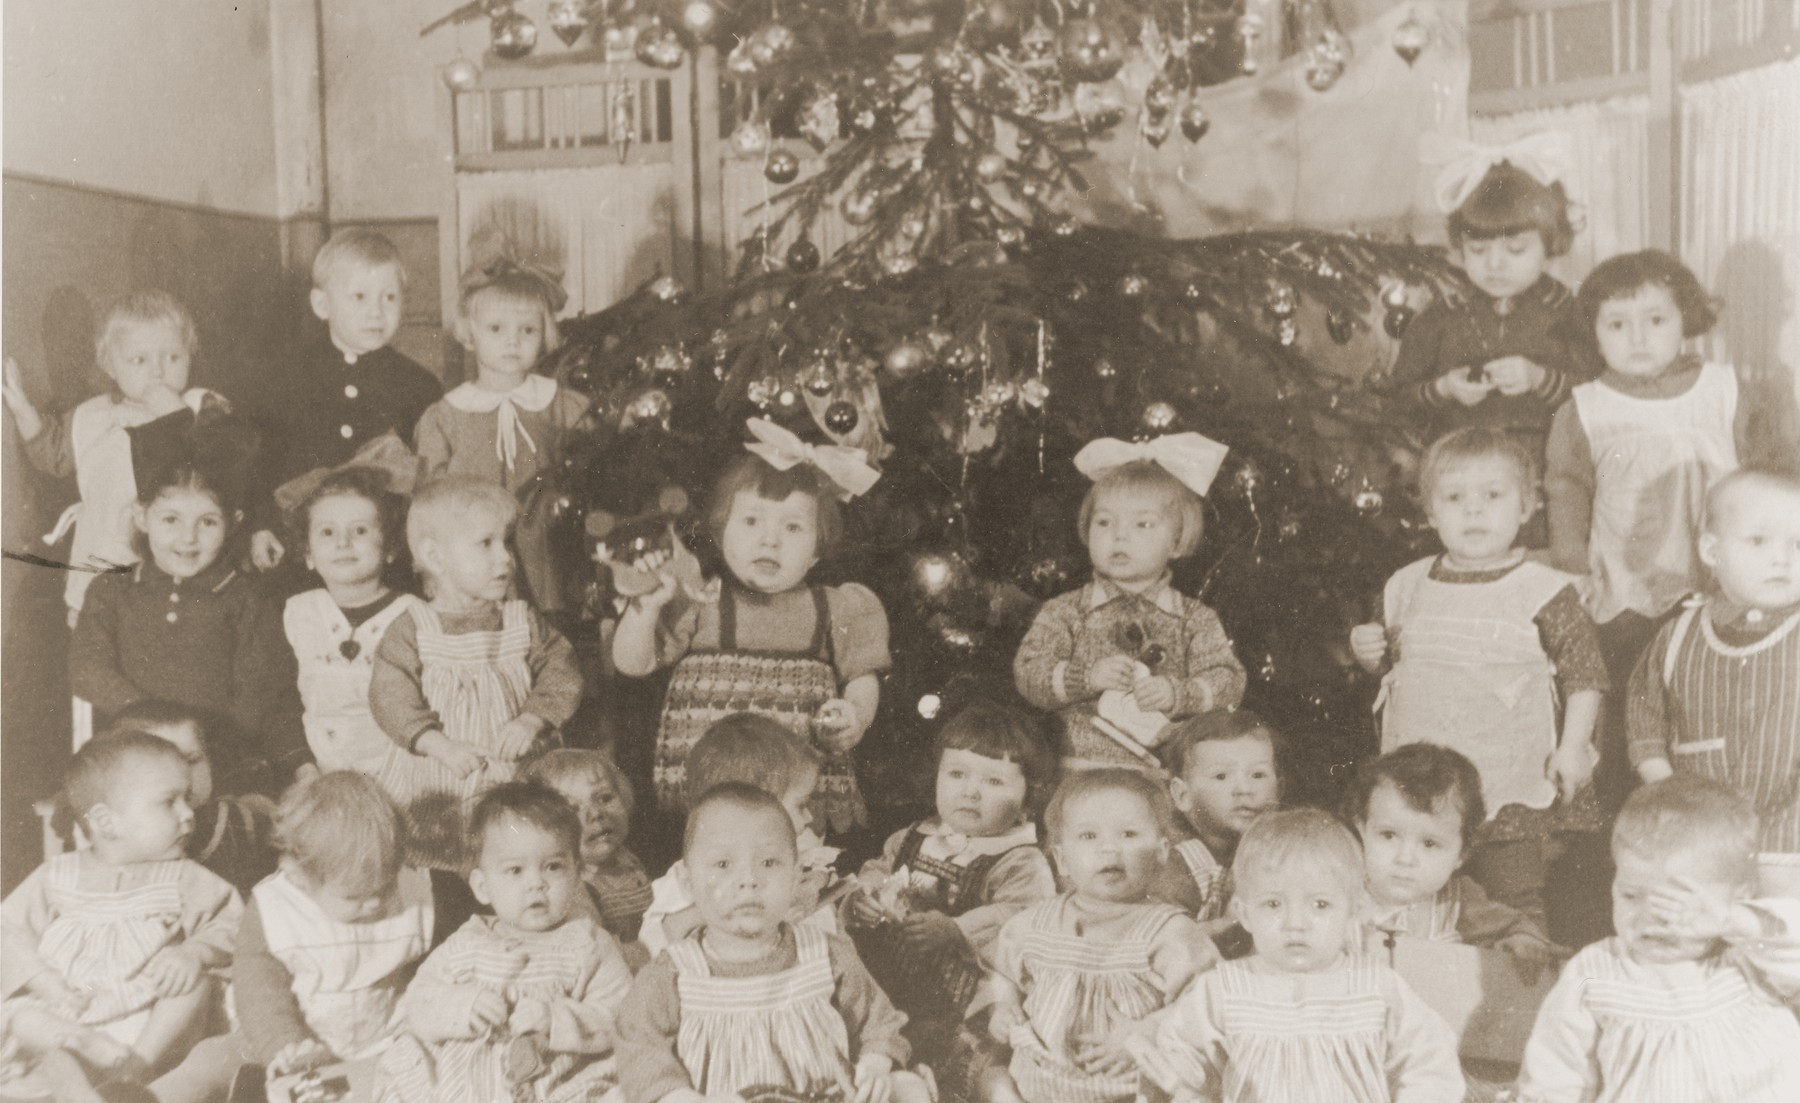 Group portrait of children celebrating Christmas at a Polish orphanage (Dom Dziecka) in Czestochowa.   Among them is Celina Berkowitz (second row, first on the left), a Jewish child in hiding.